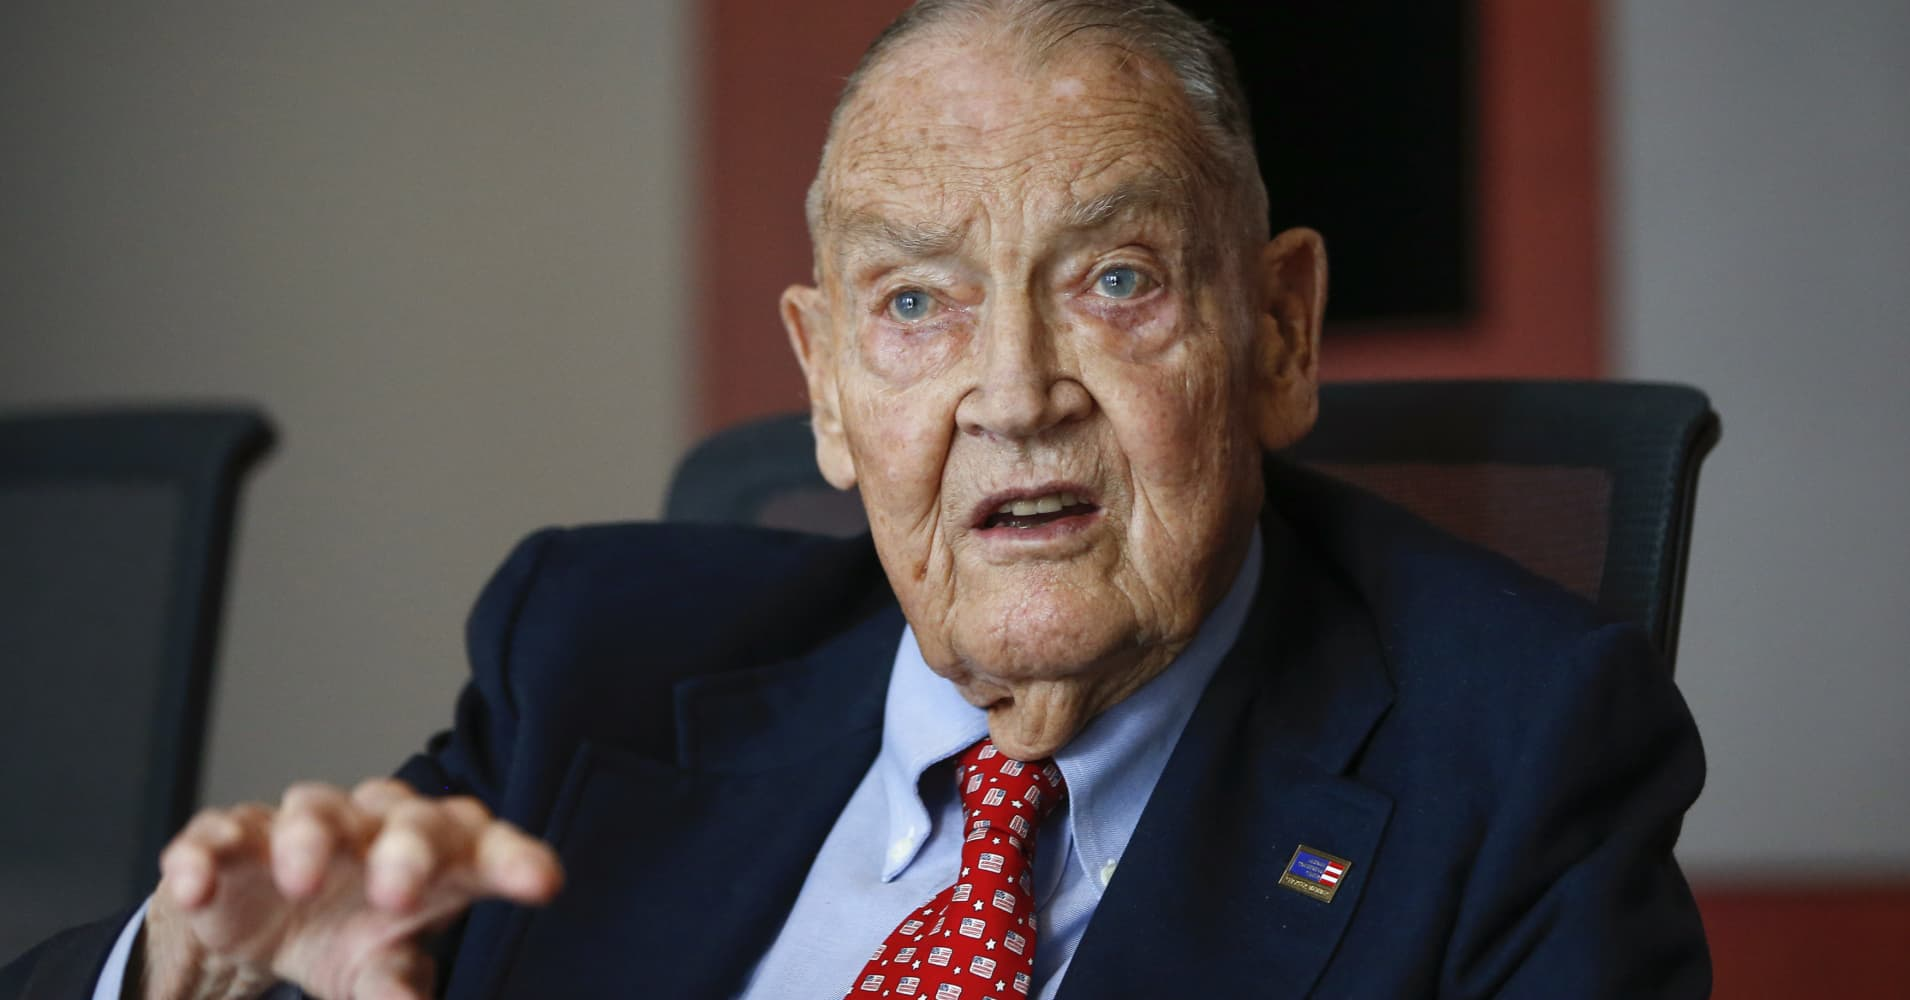 Jack Bogle reveals the biggest risk of the next financial crisis and why he's still investing